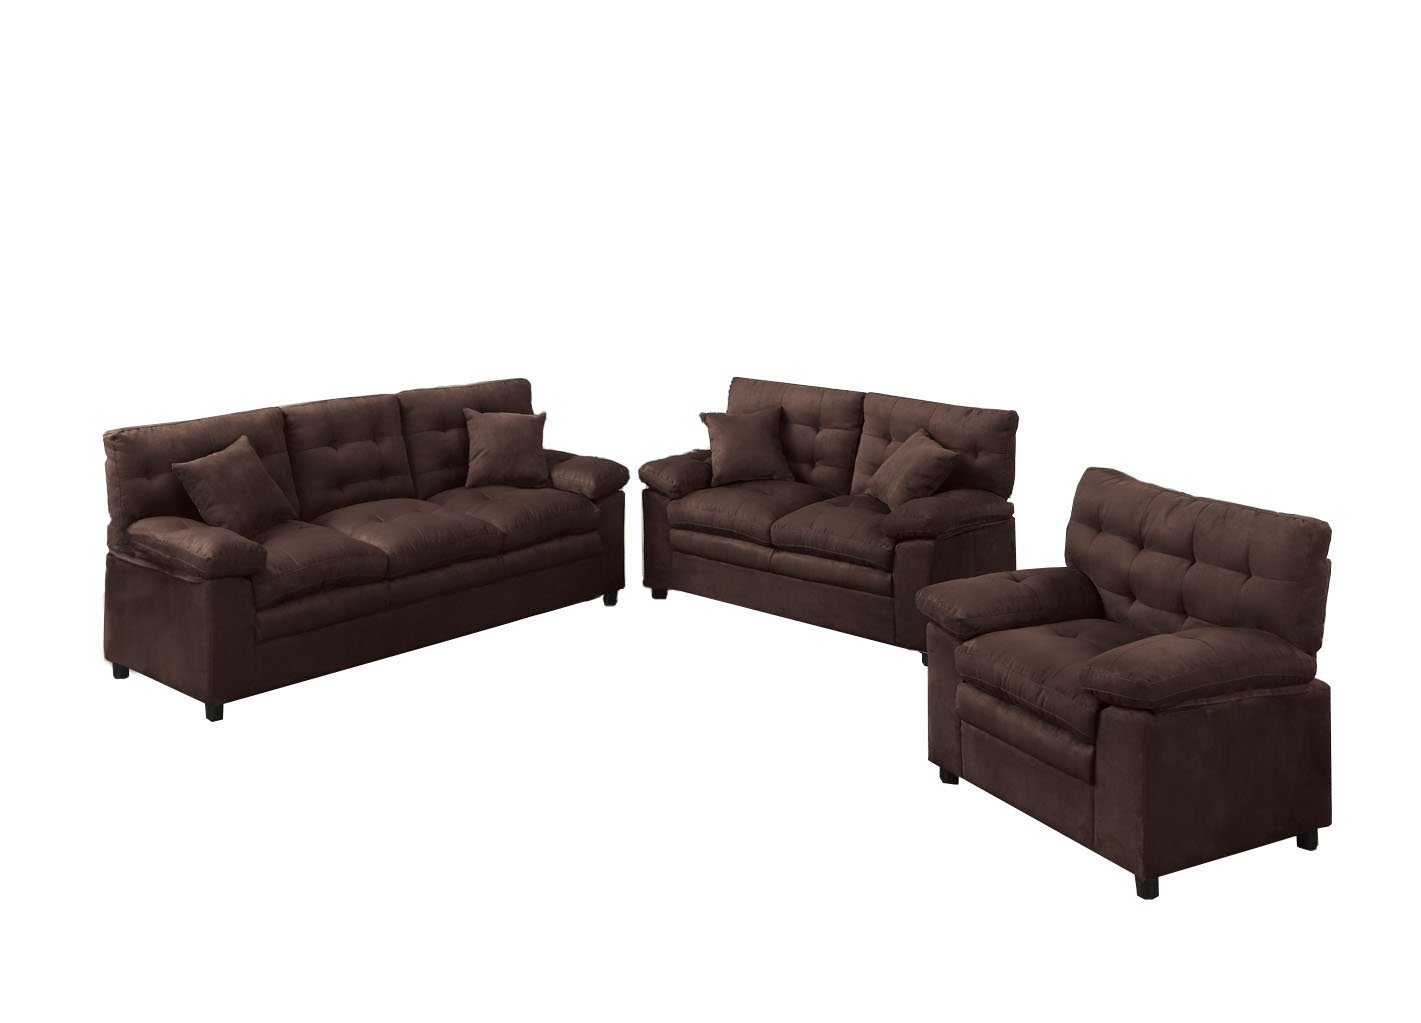 Sofa And Loveseat Sets Under 500 Top Living Room Sets